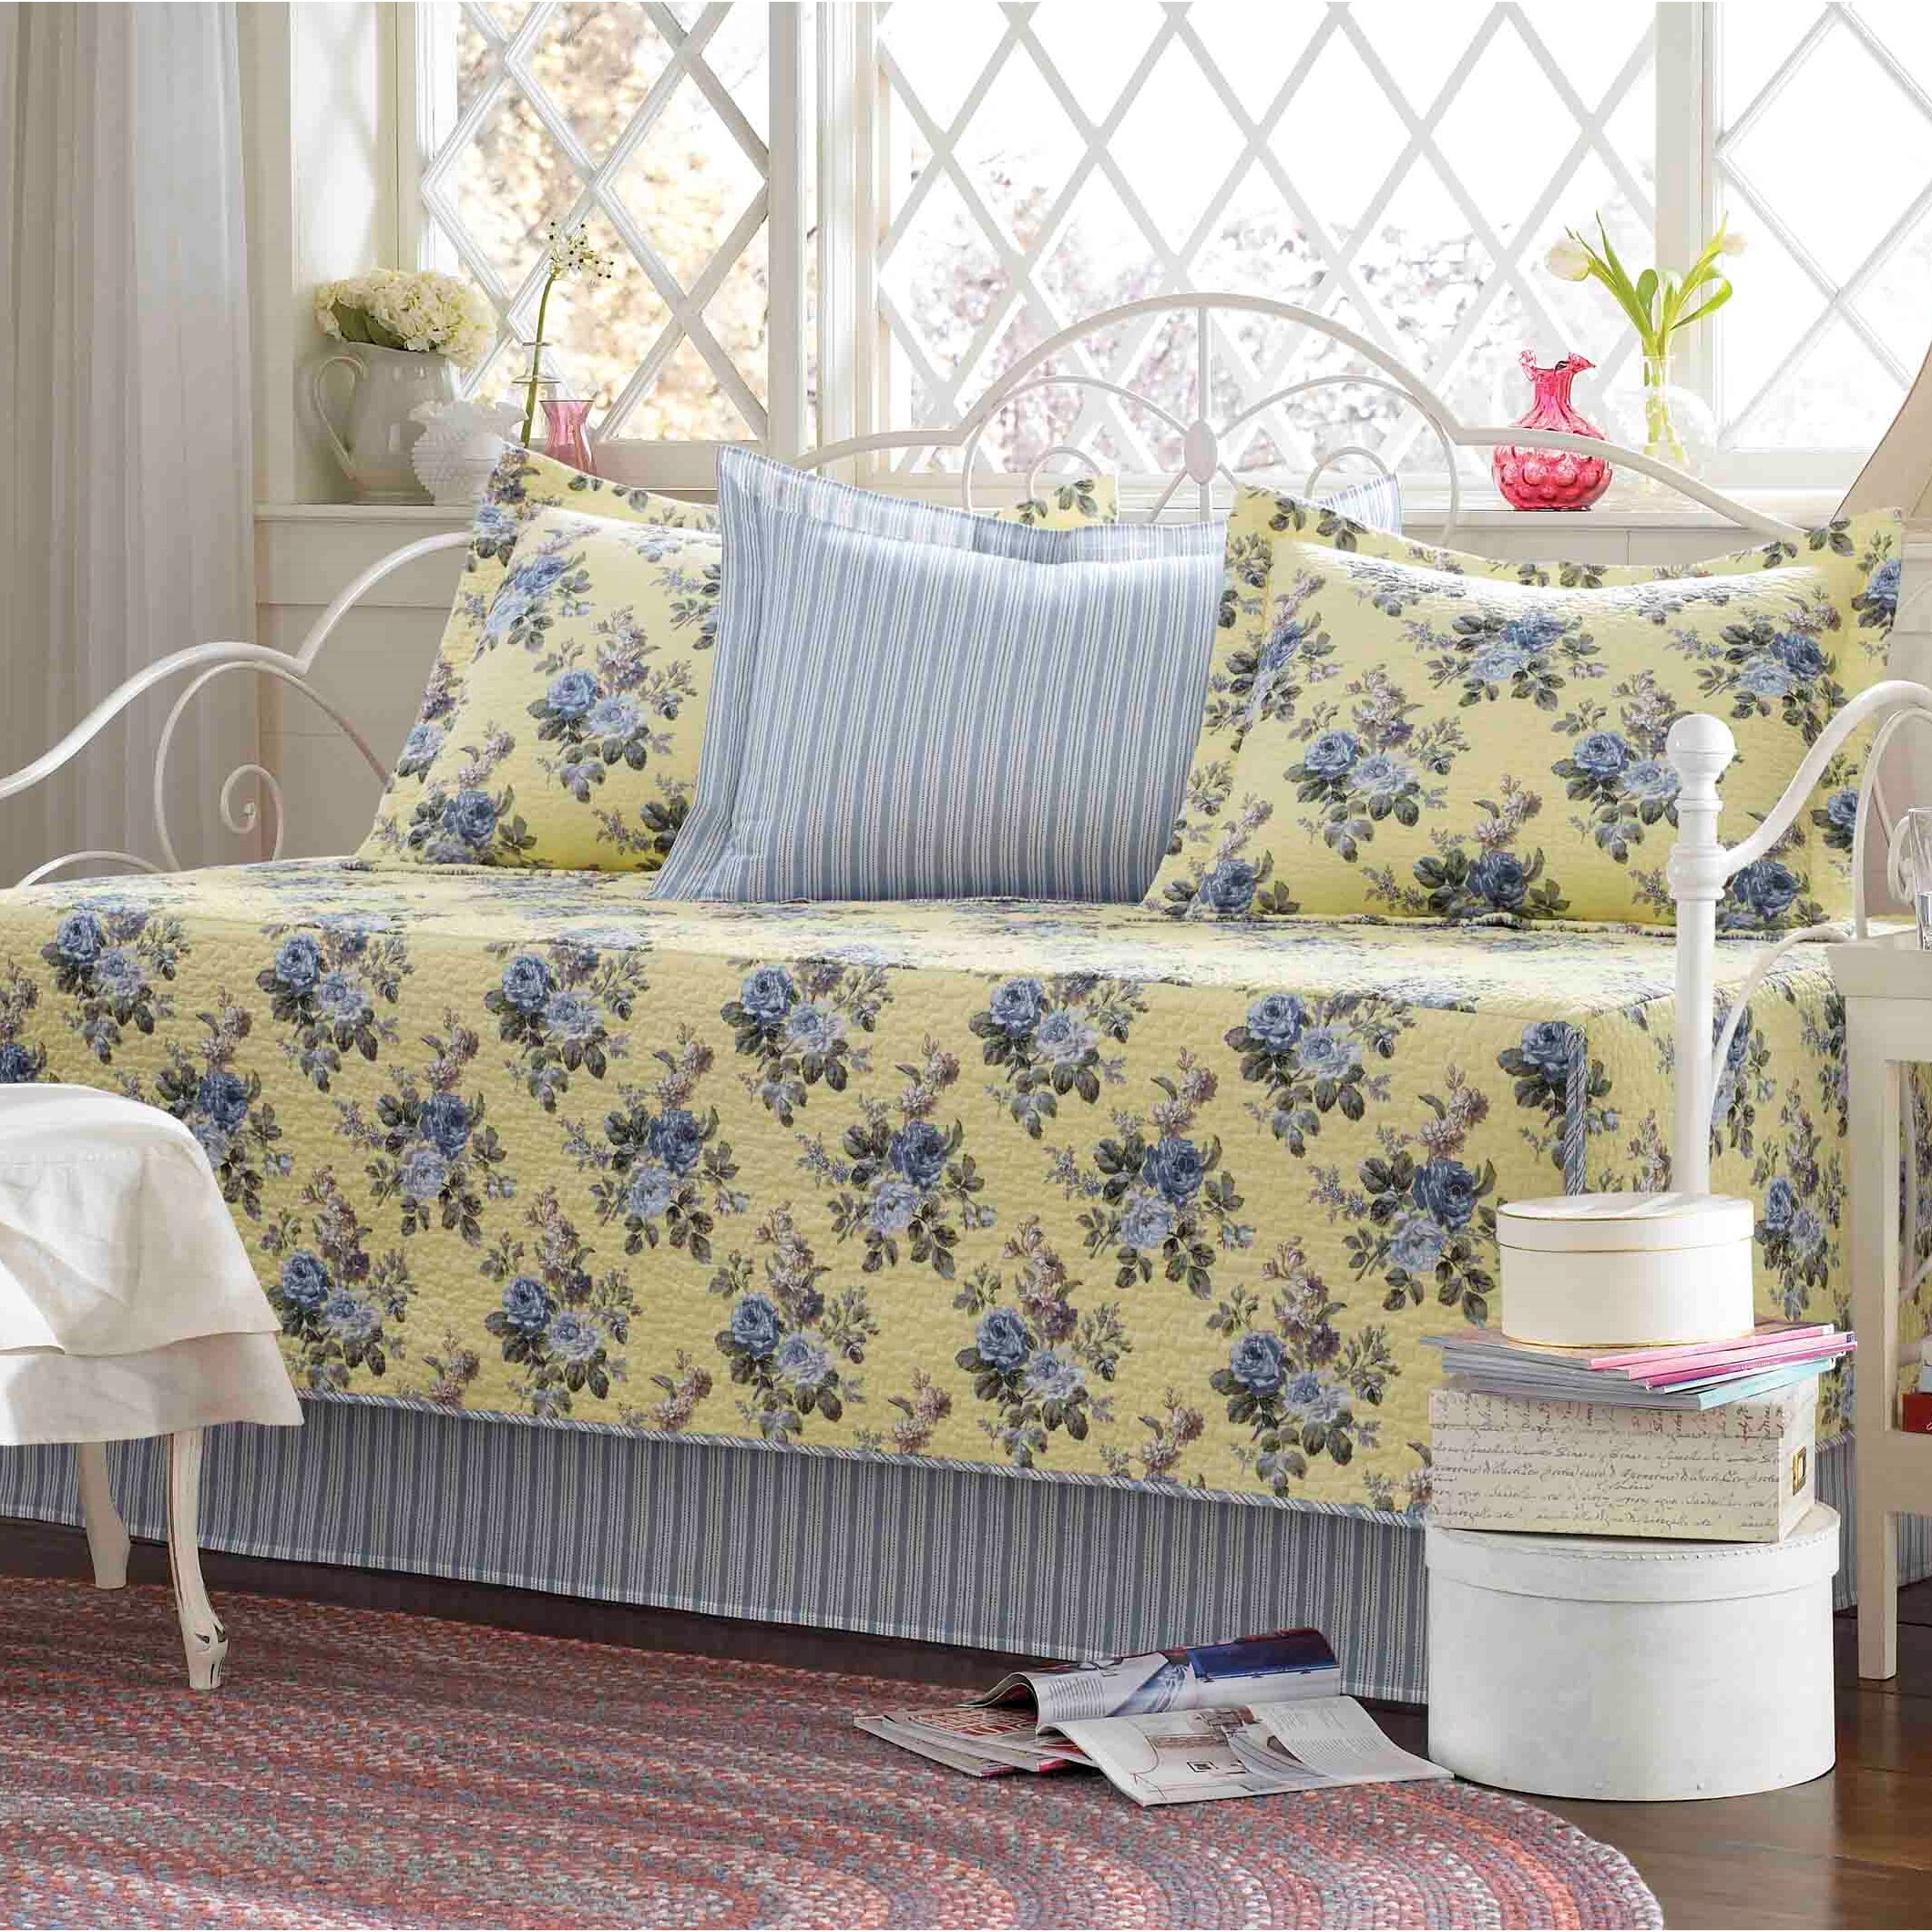 Laura Ashley Home Linley 5 Piece Daybed Cover Set